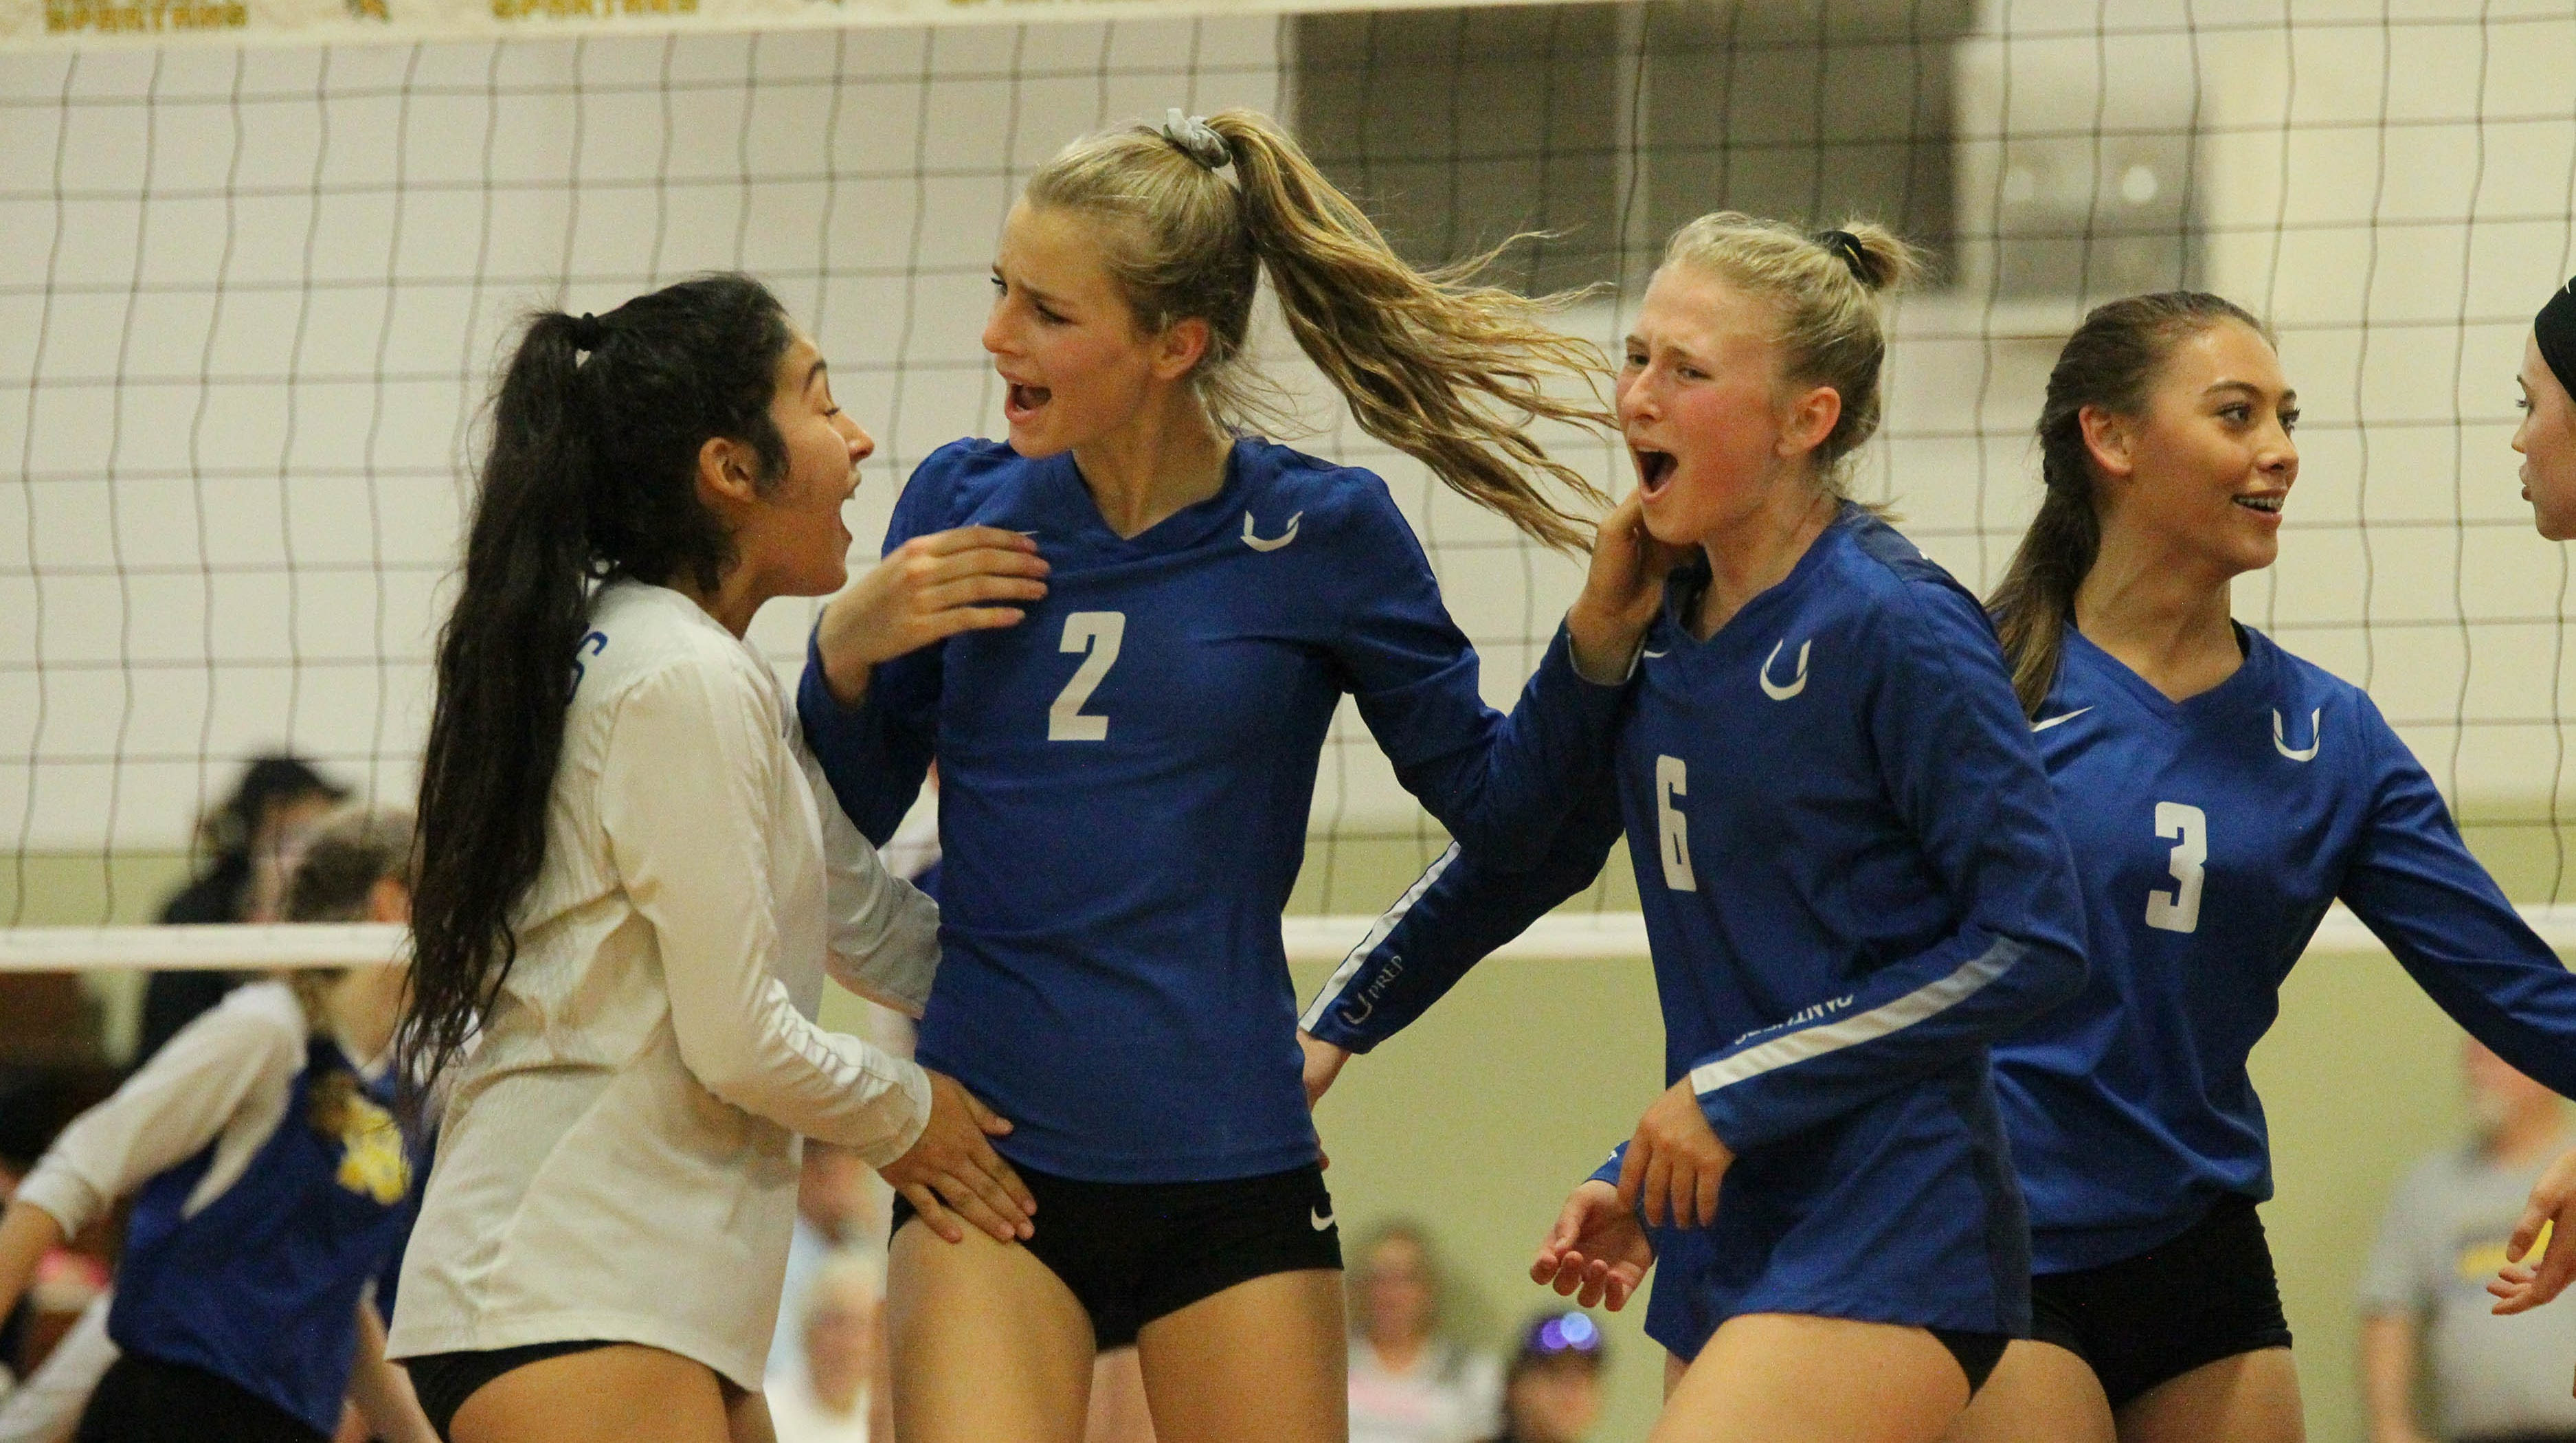 From left: Gigi Elizarraras, Madison Kremer, Emily Cox and Kaleia Mizuta celebrate a point during the Division IV Northern Section volleyball championship on Saturday, Nov. 3. Pierce won the match in three sets over U-Prep, 25-23, 25-21, 25-22.